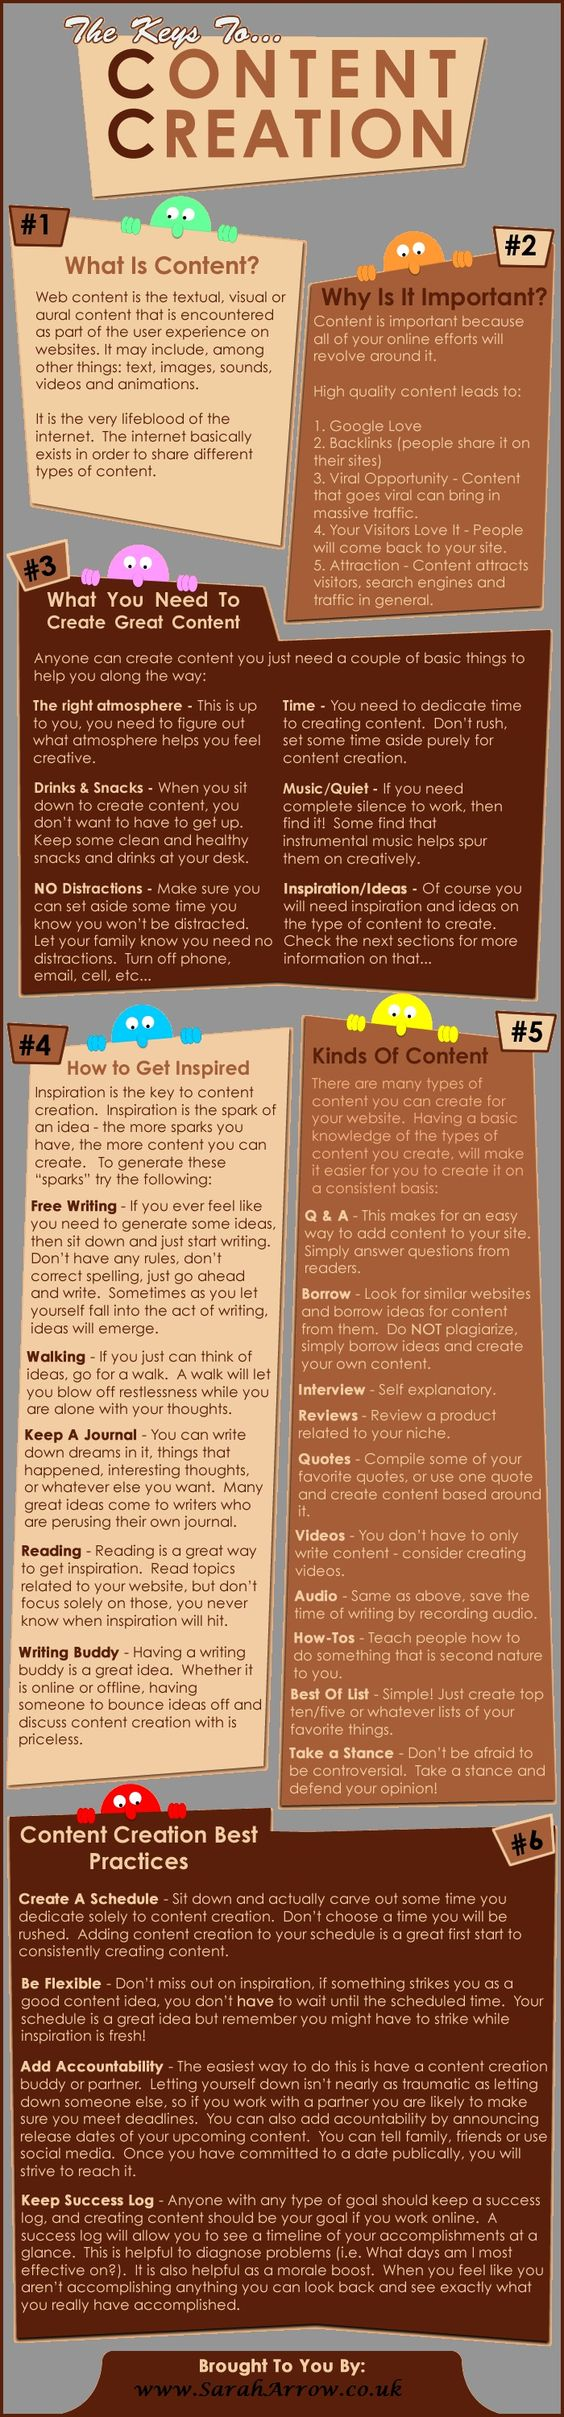 The keys to content creation infographic